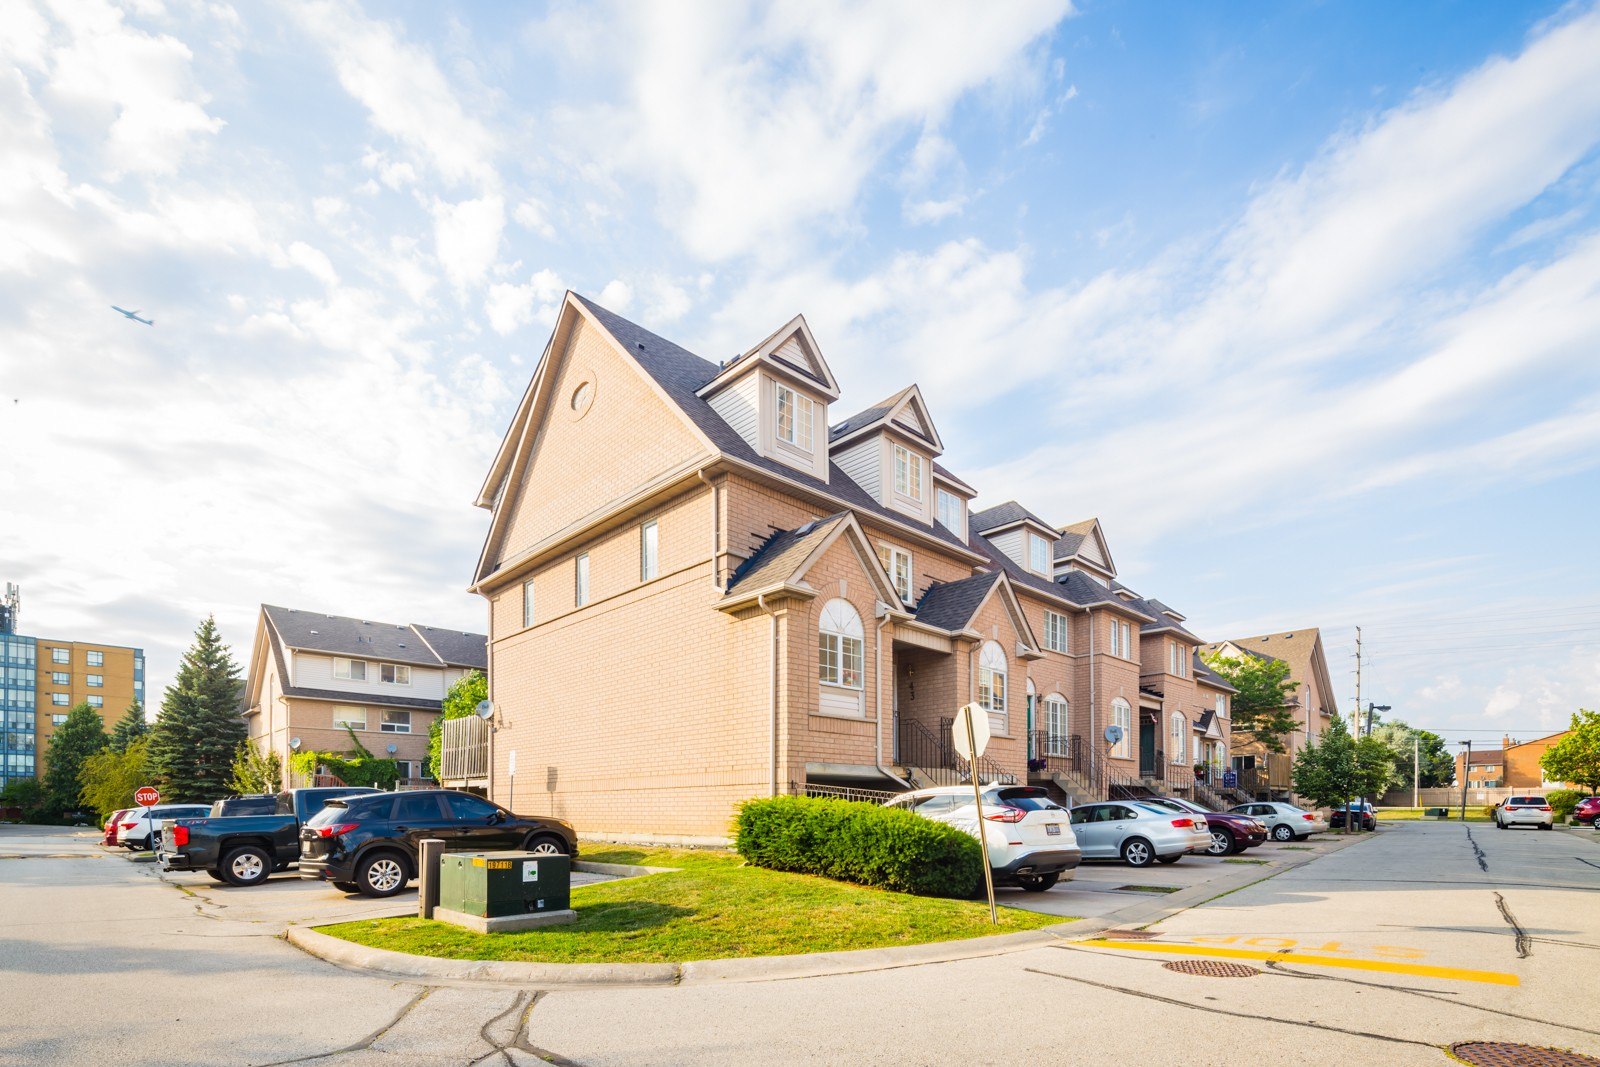 75 Strathaven Drive Townhouses at 75 Strathaven Dr, Mississauga 1